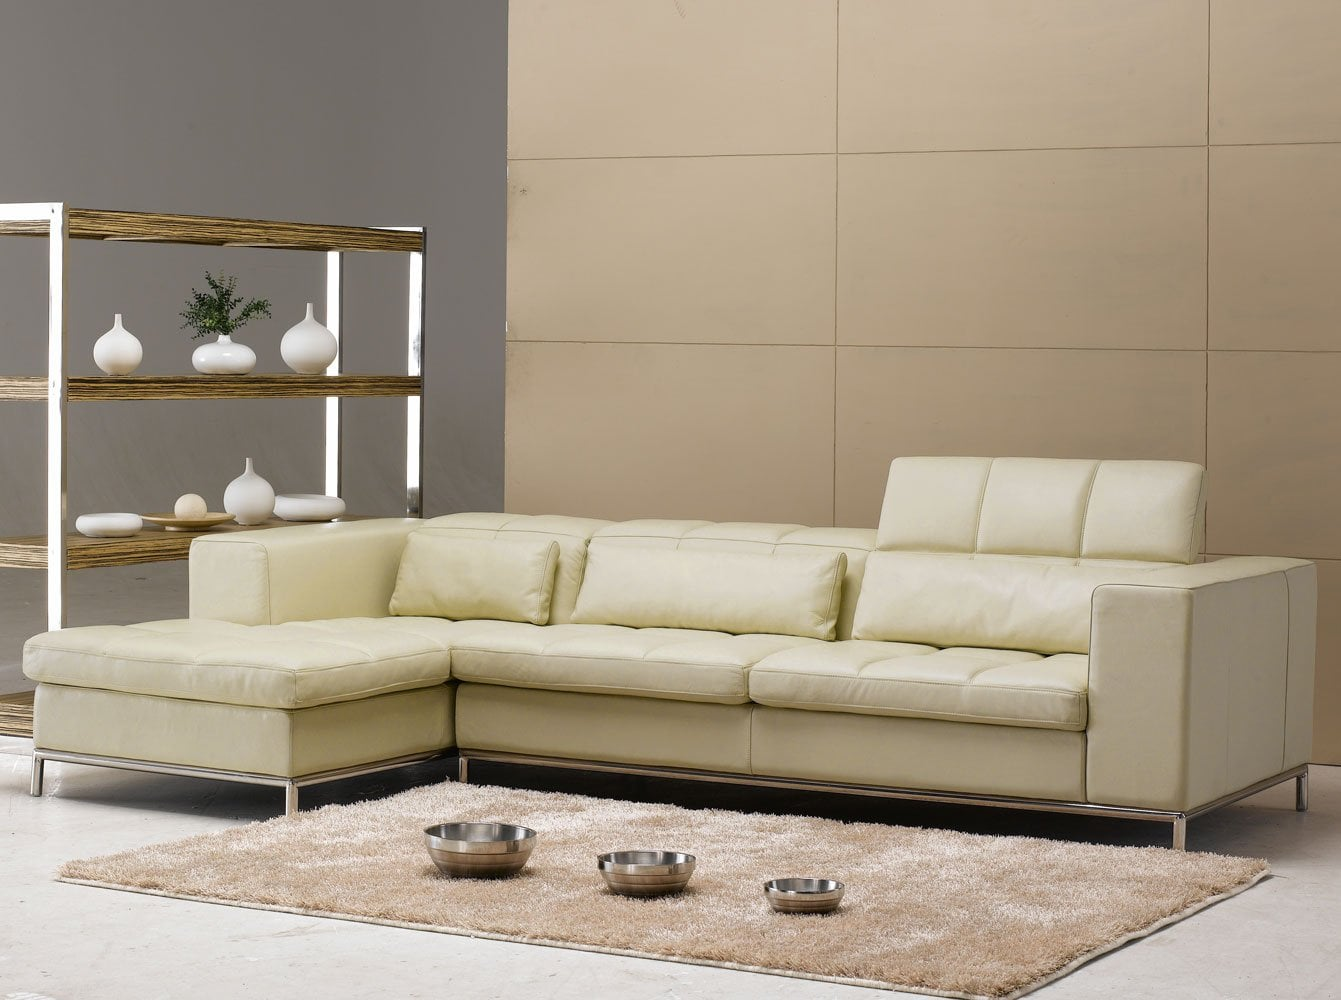 Beige Ledercouch The Best Way To Keep Clean Beige Leather Sofa – Loccie